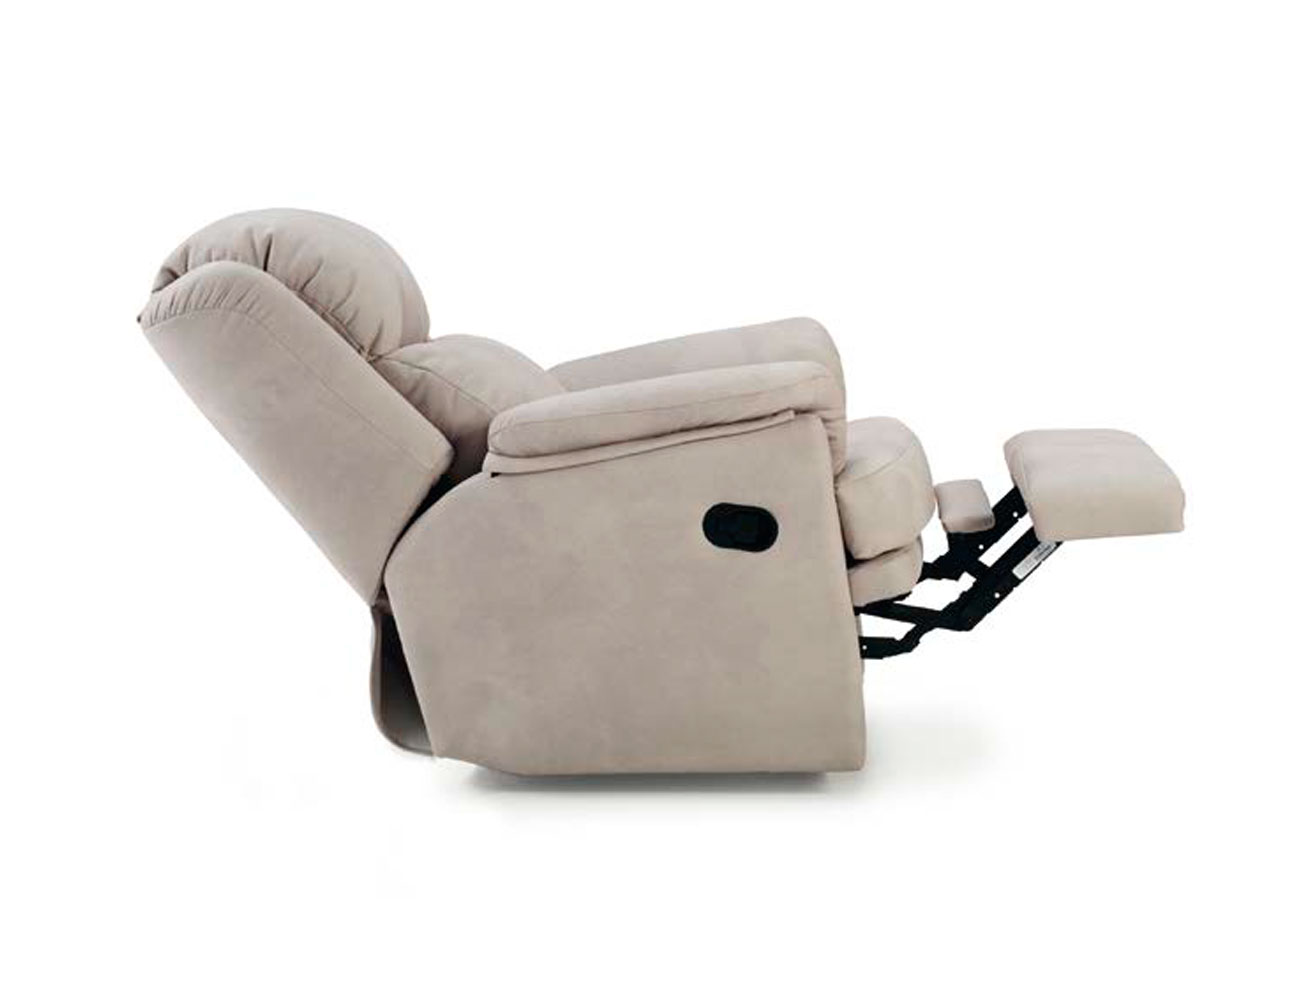 Sillon relax manual palanca esther 16